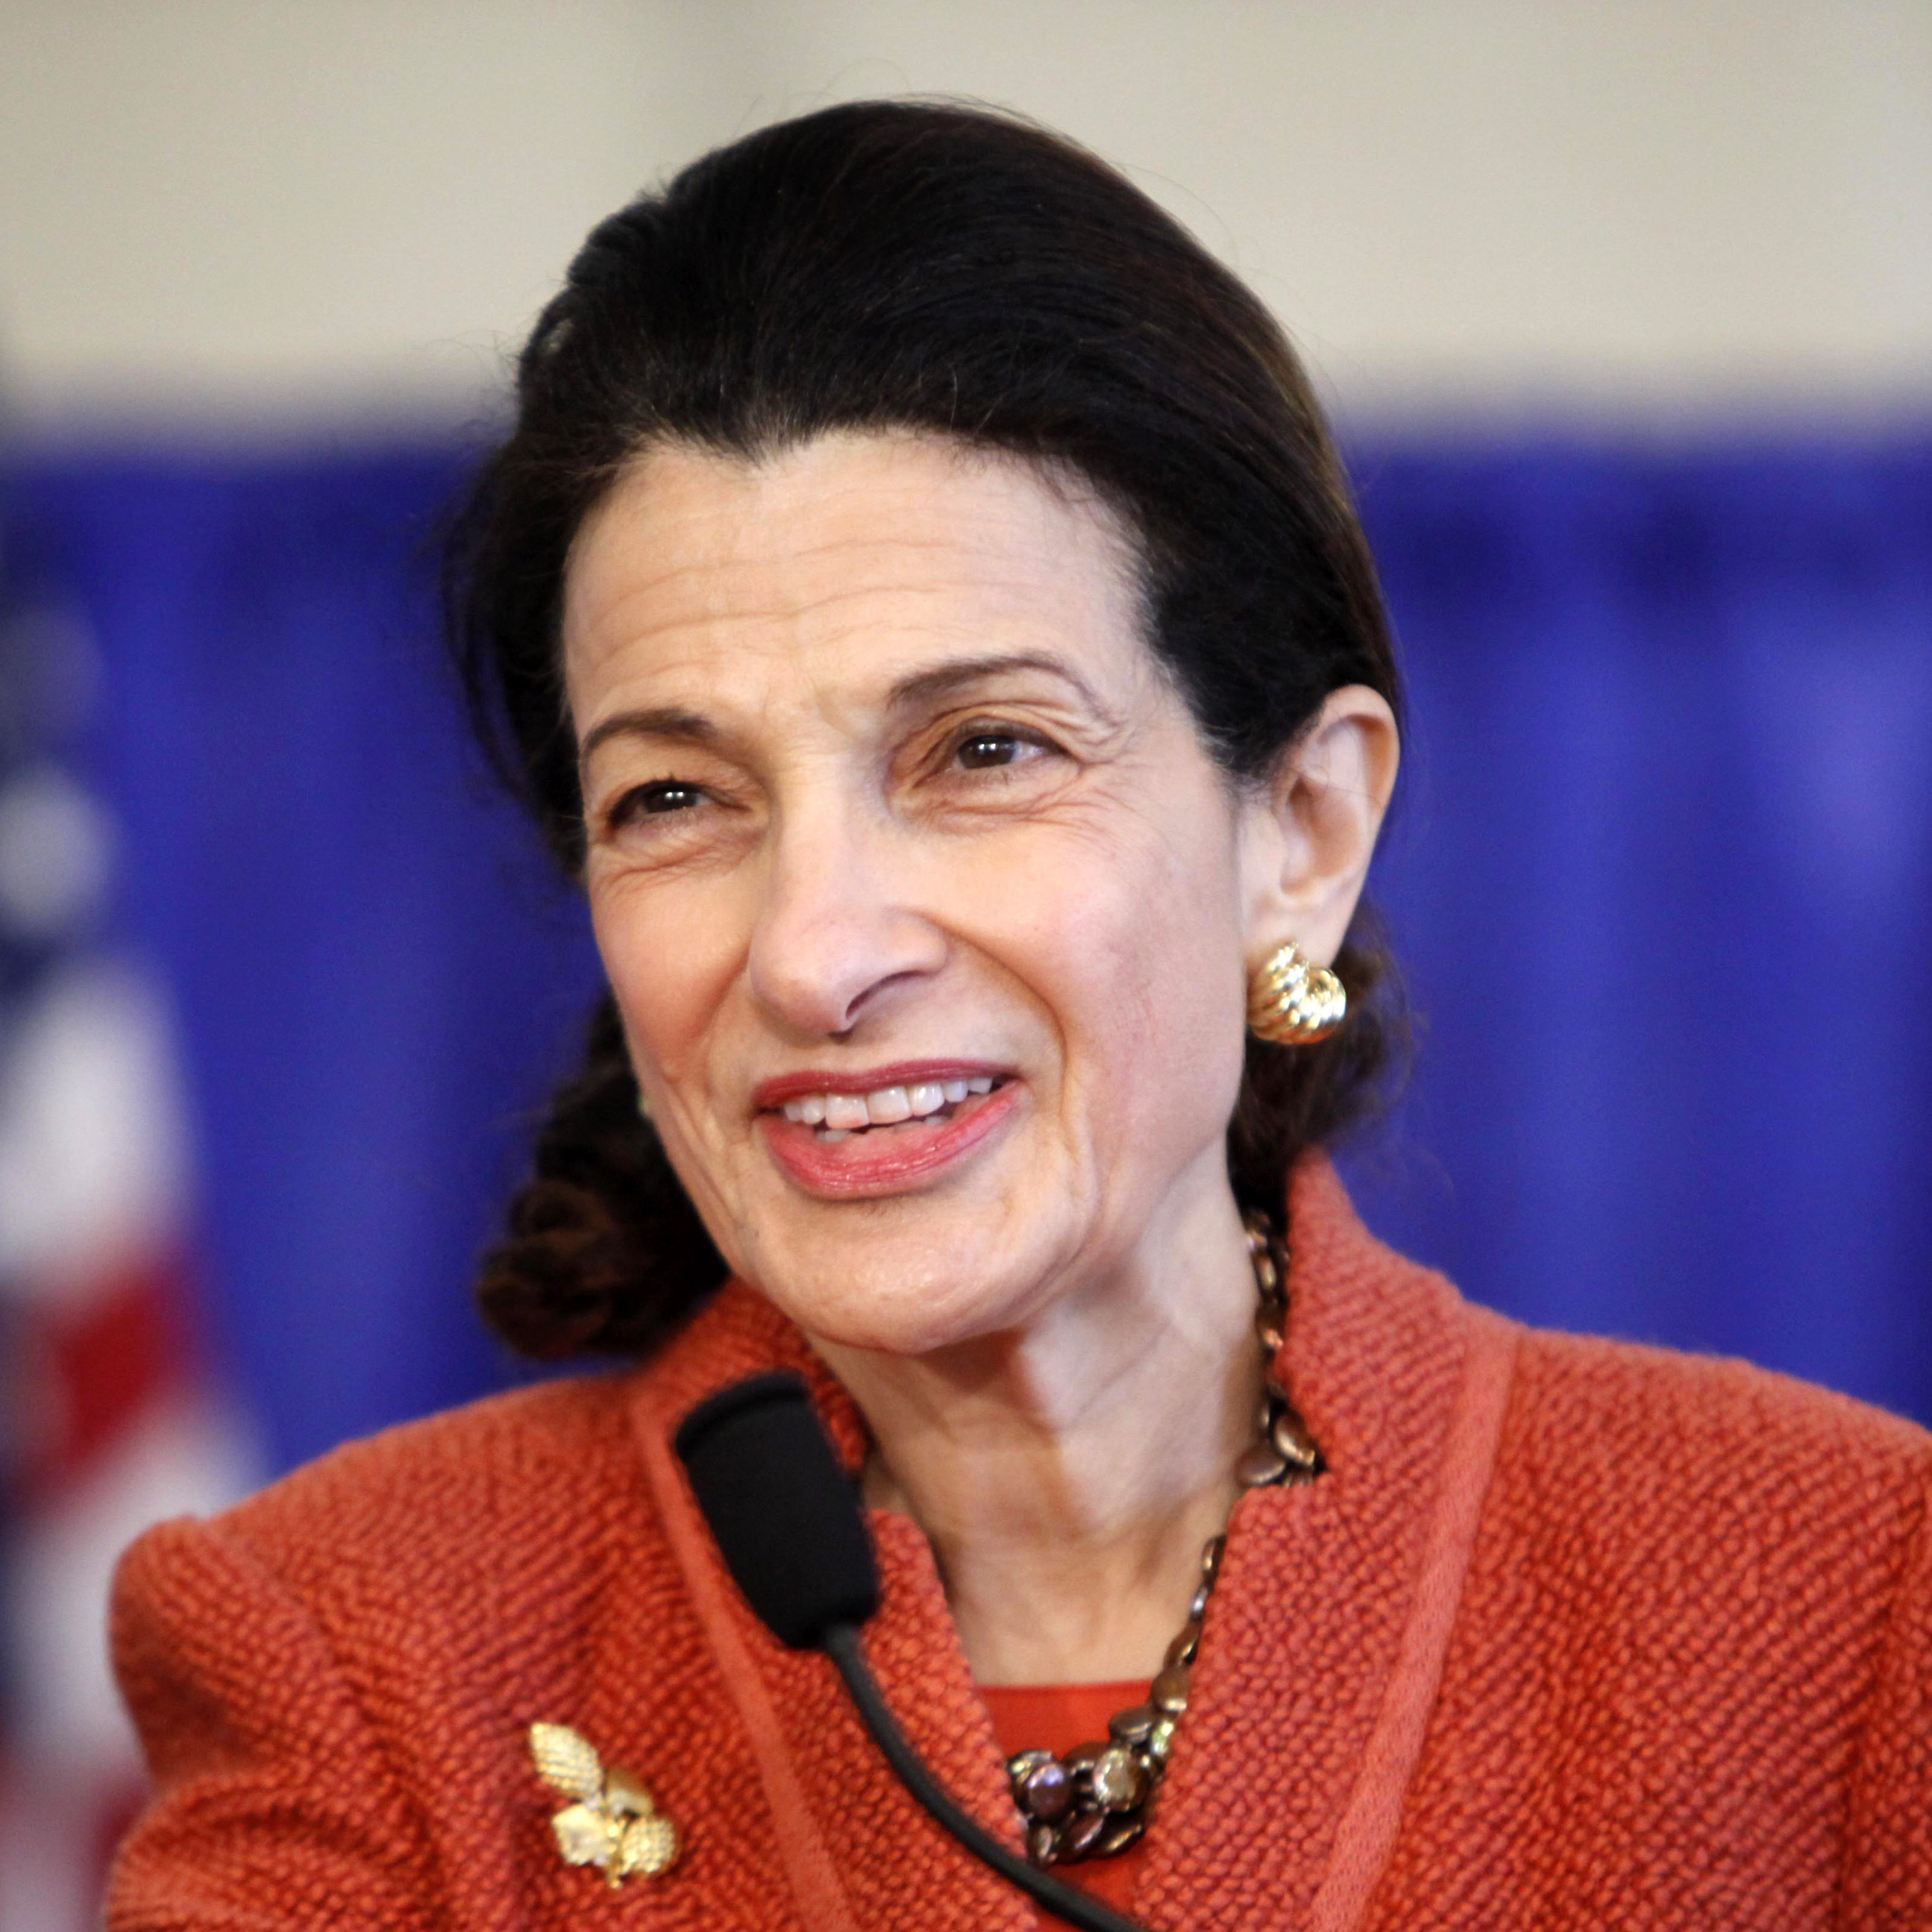 Sen. Olympia Snowe, R-Maine, speaks at a news conference in South Portland in March.